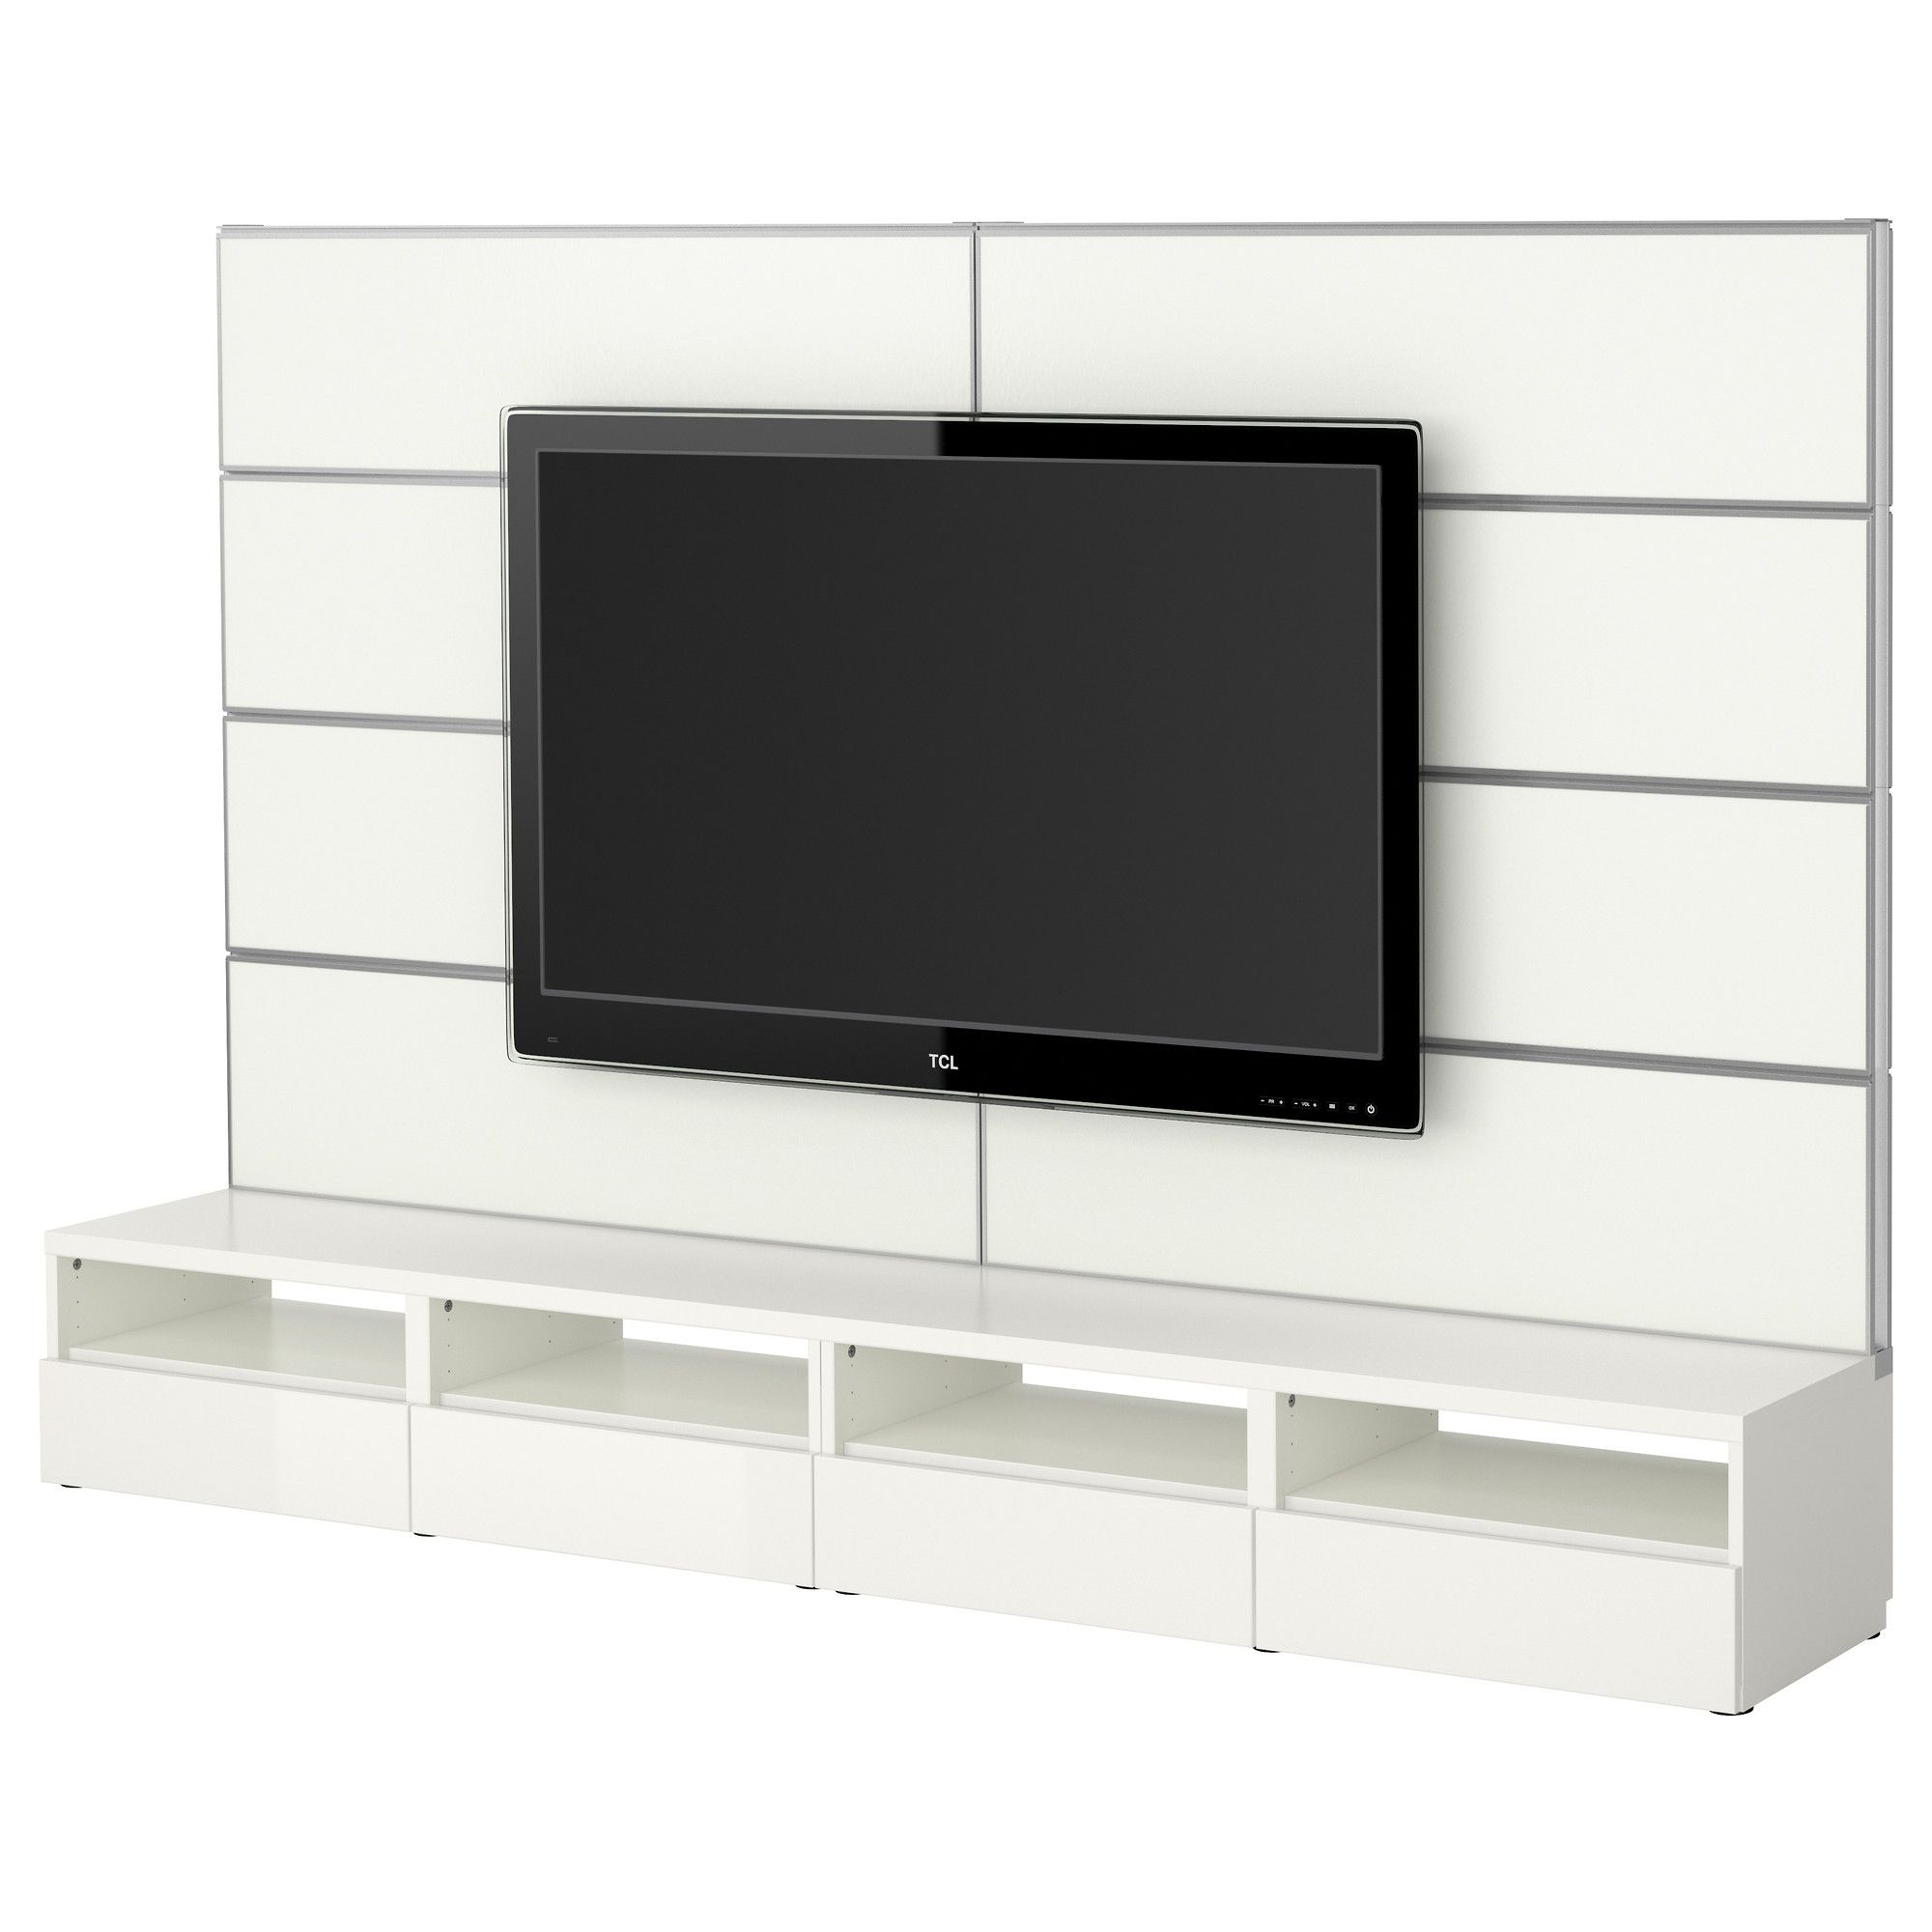 Best framst tv storage combination white ikea apt pinterest tv st - Meuble tv mural ikea ...